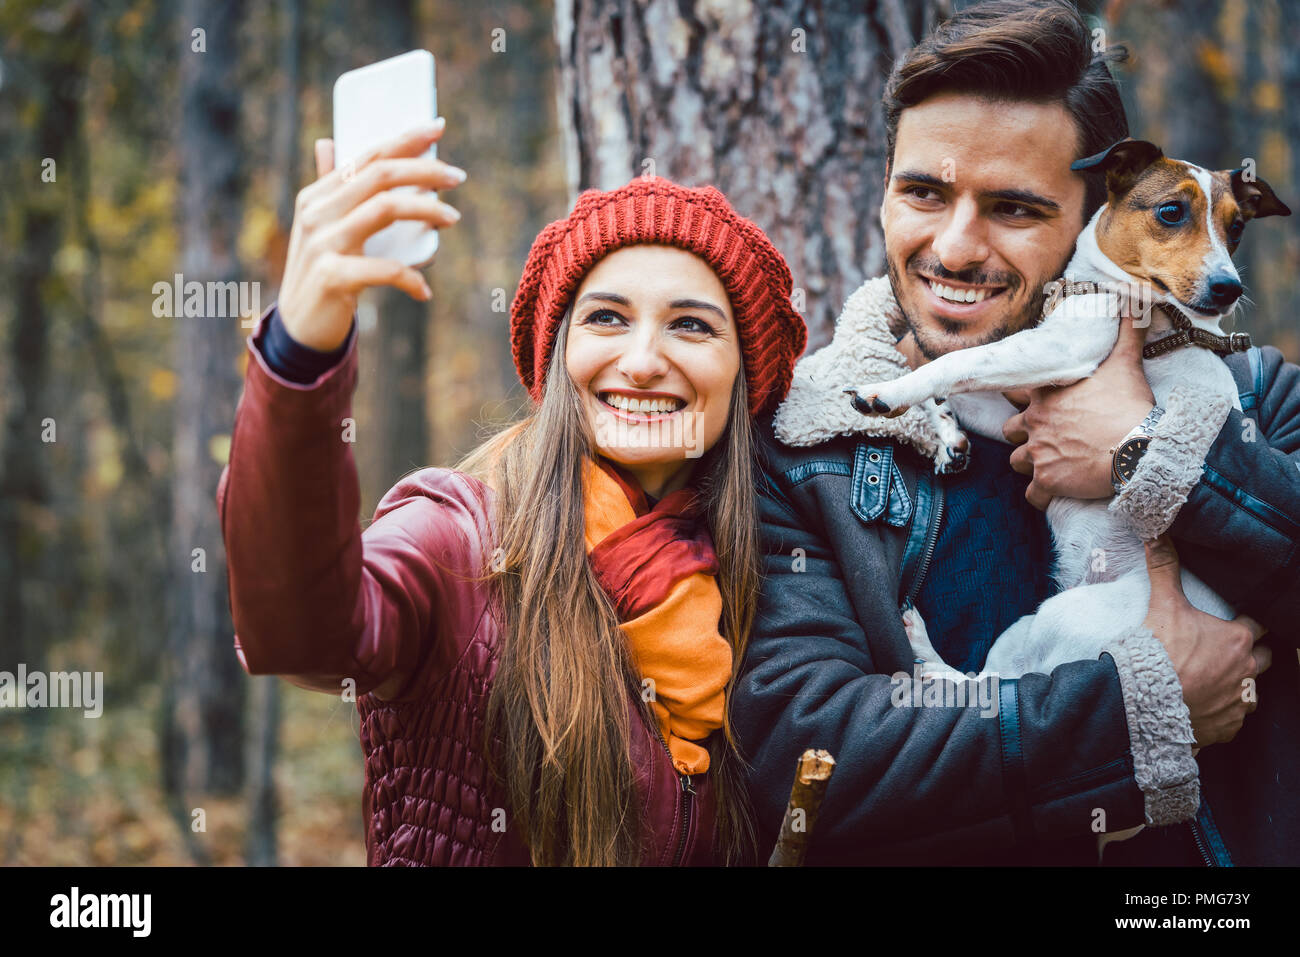 Woman and man with their dog on autumn walk taking a phone selfie Stock Photo